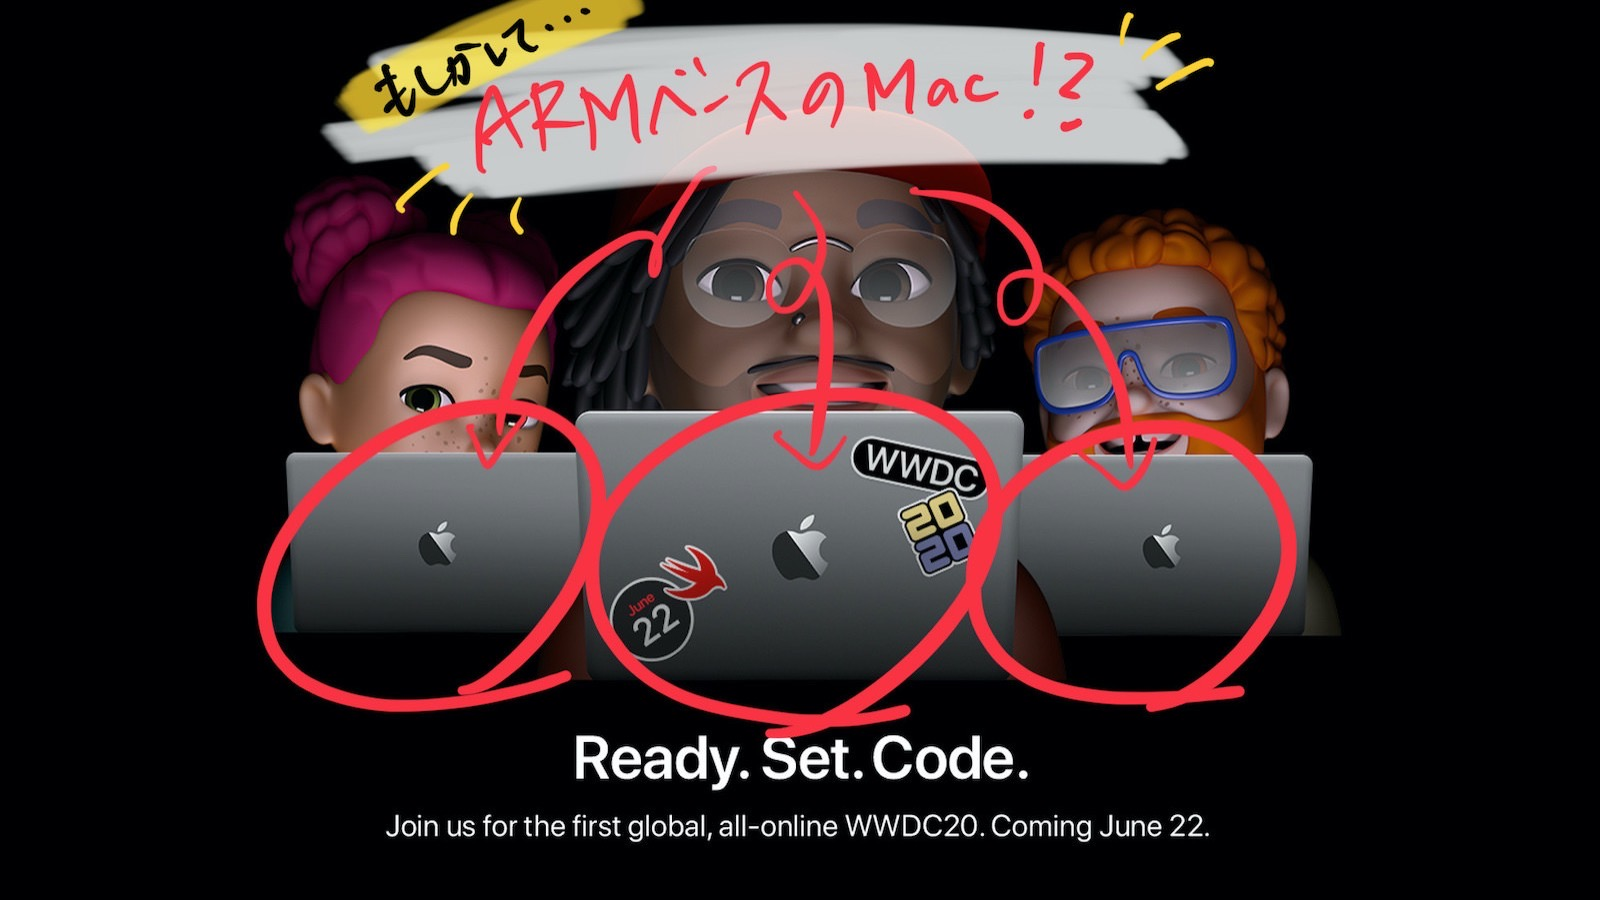 ARM Based Mac possible at WWDC20